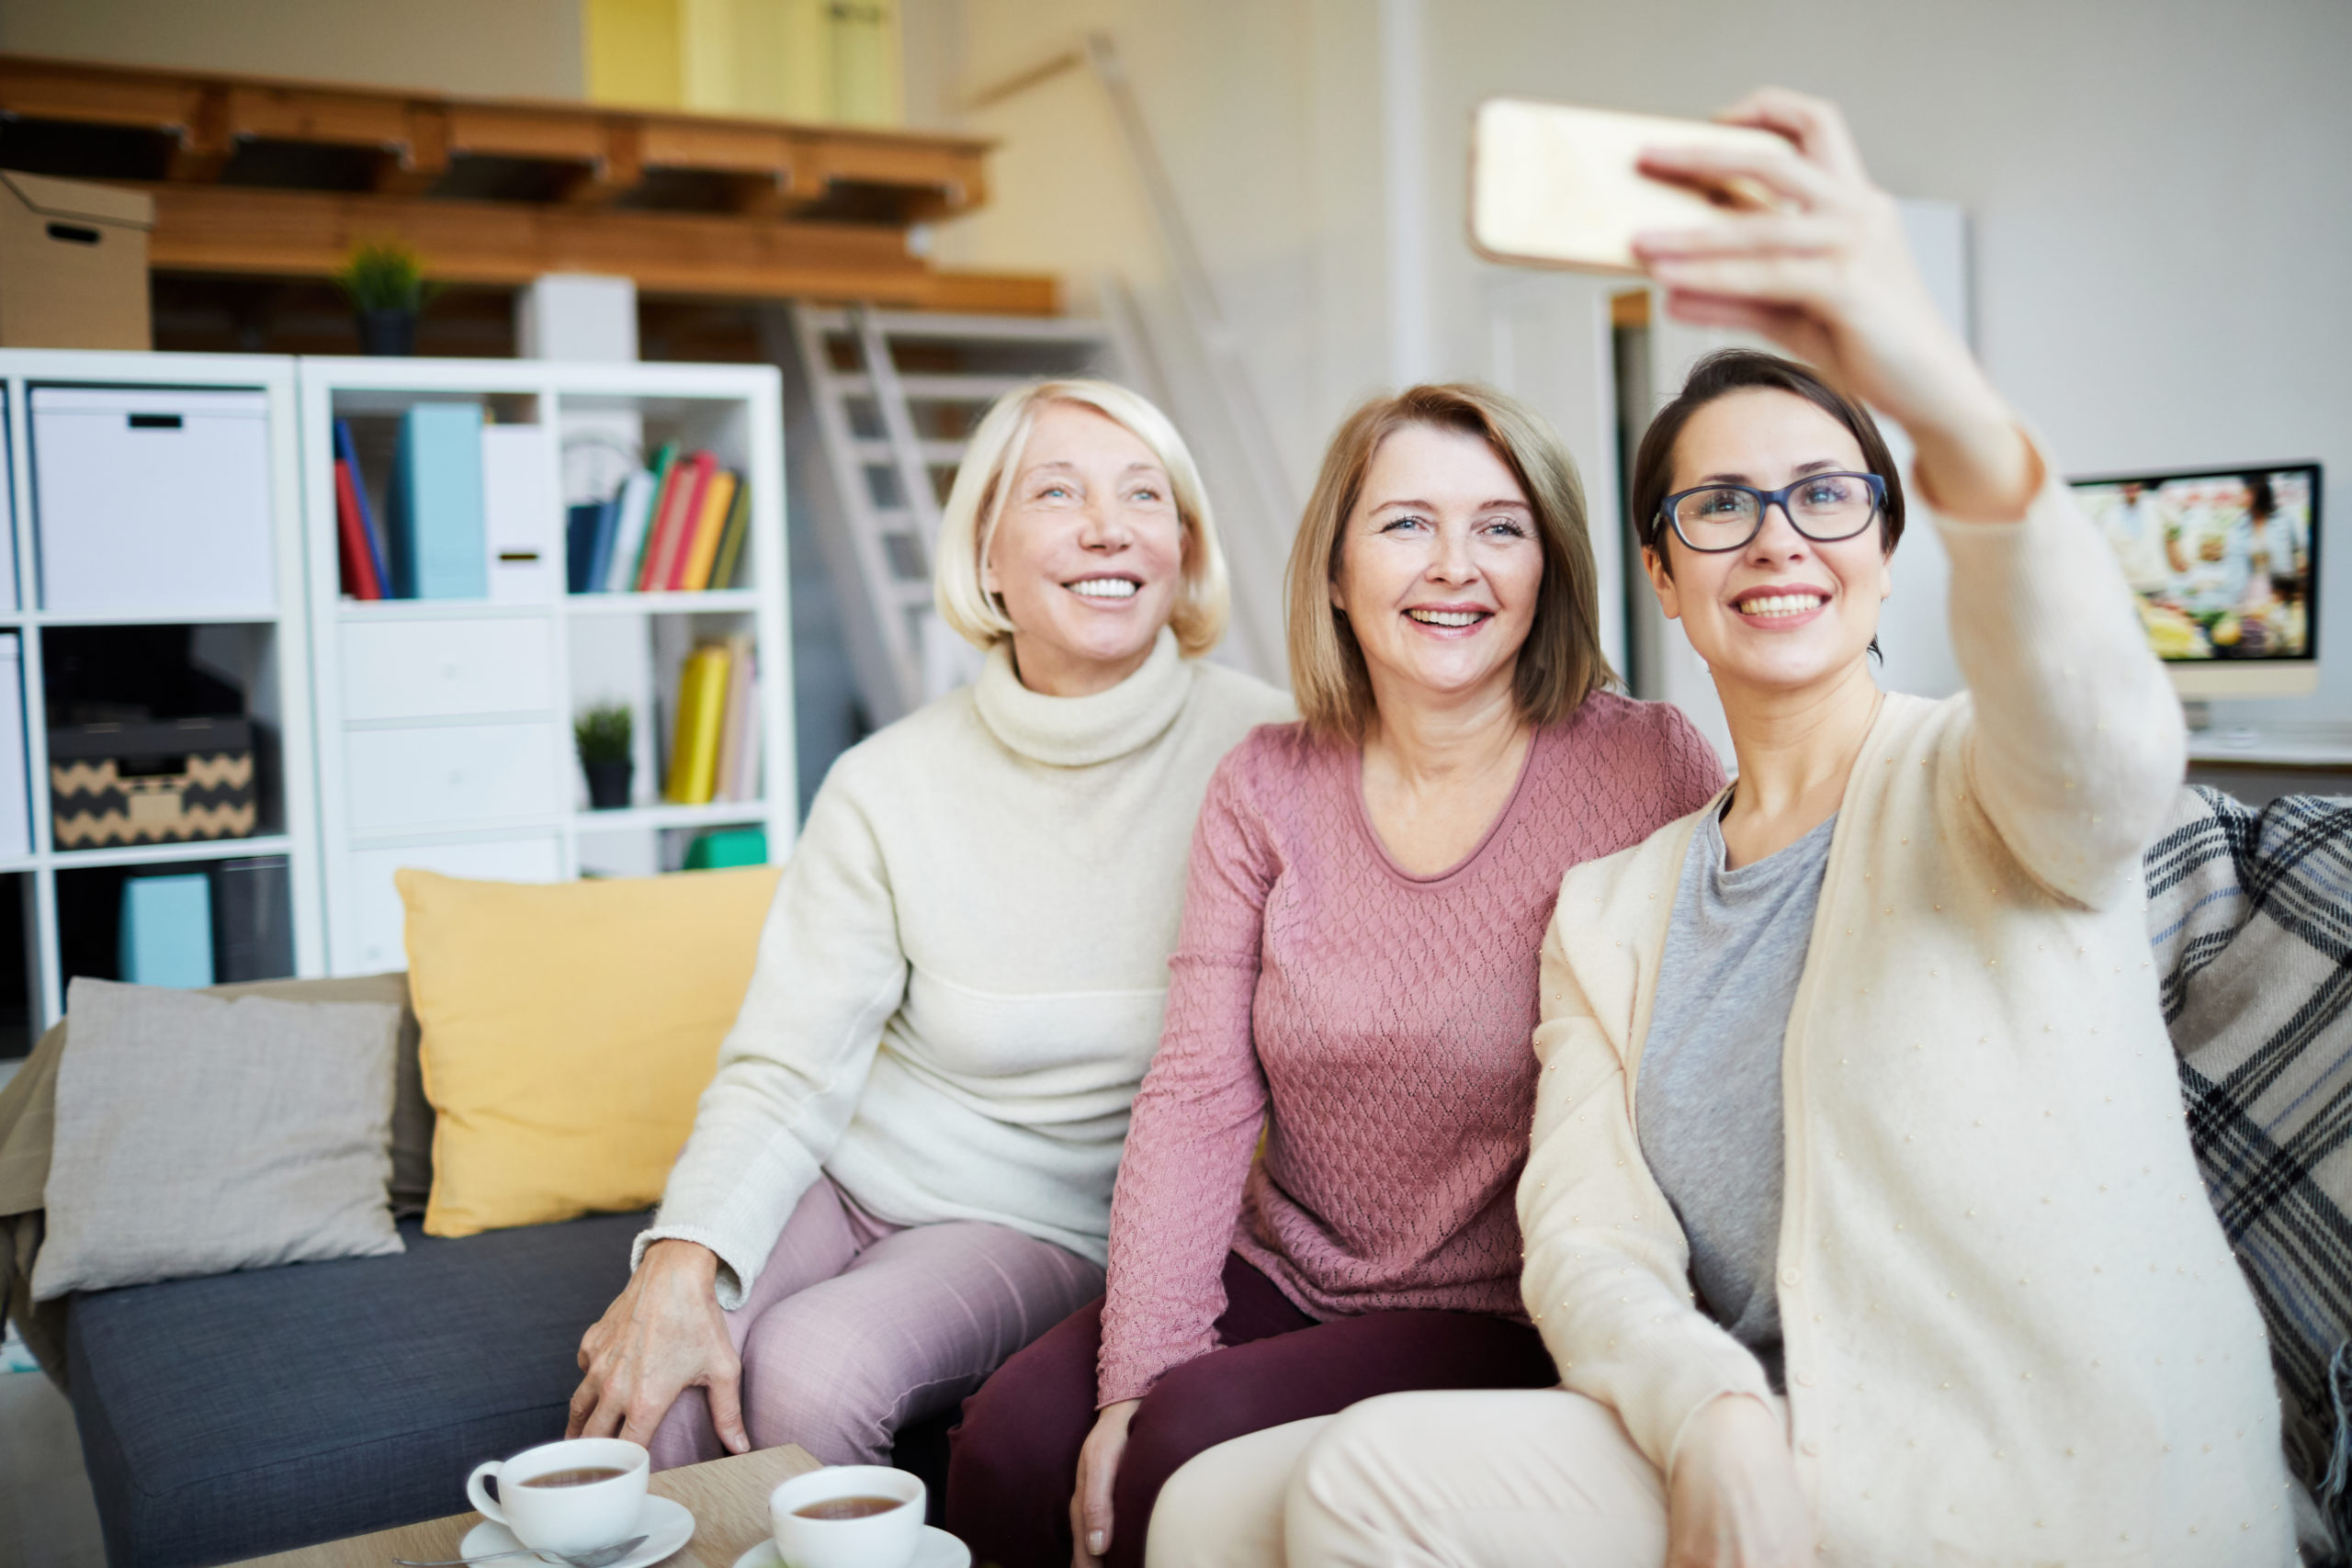 Facetime group chat limit https://elements.envato.com/three-women-taking-selfie-HEYQX9W